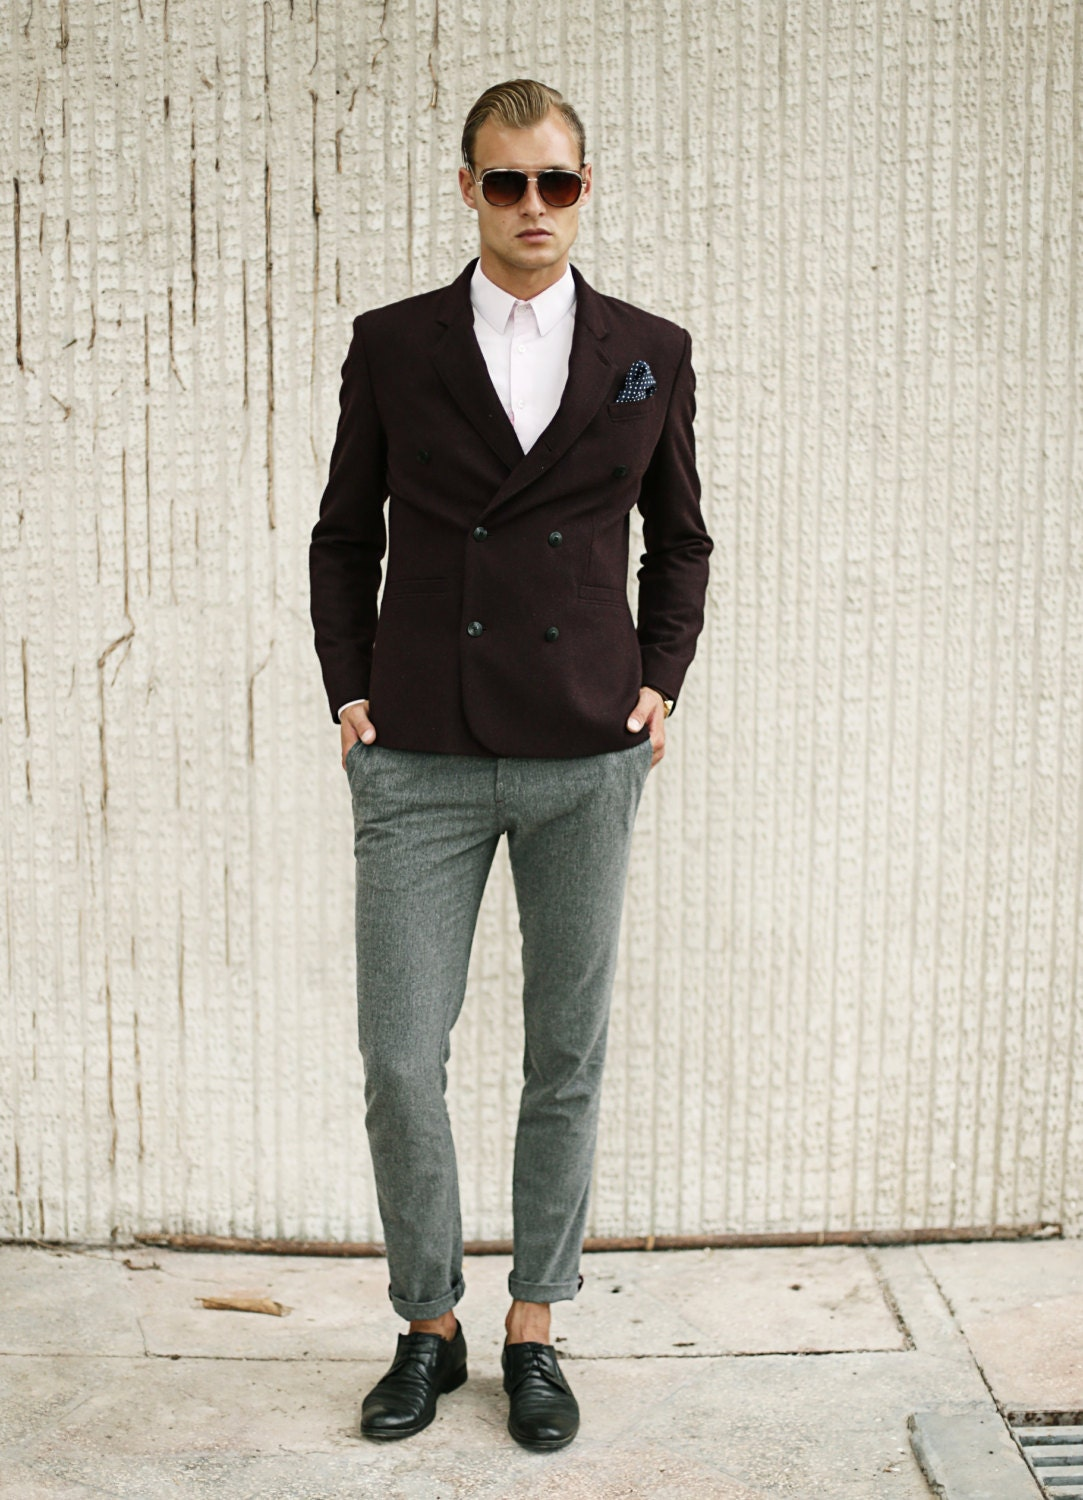 Wool Pants. When shopping for suit separates—for men and women—you can't go wrong with a solid pair of wool pants. Appropriate for the office and for dressier events, these pants are a wardrobe staple and a great investment for any closet.